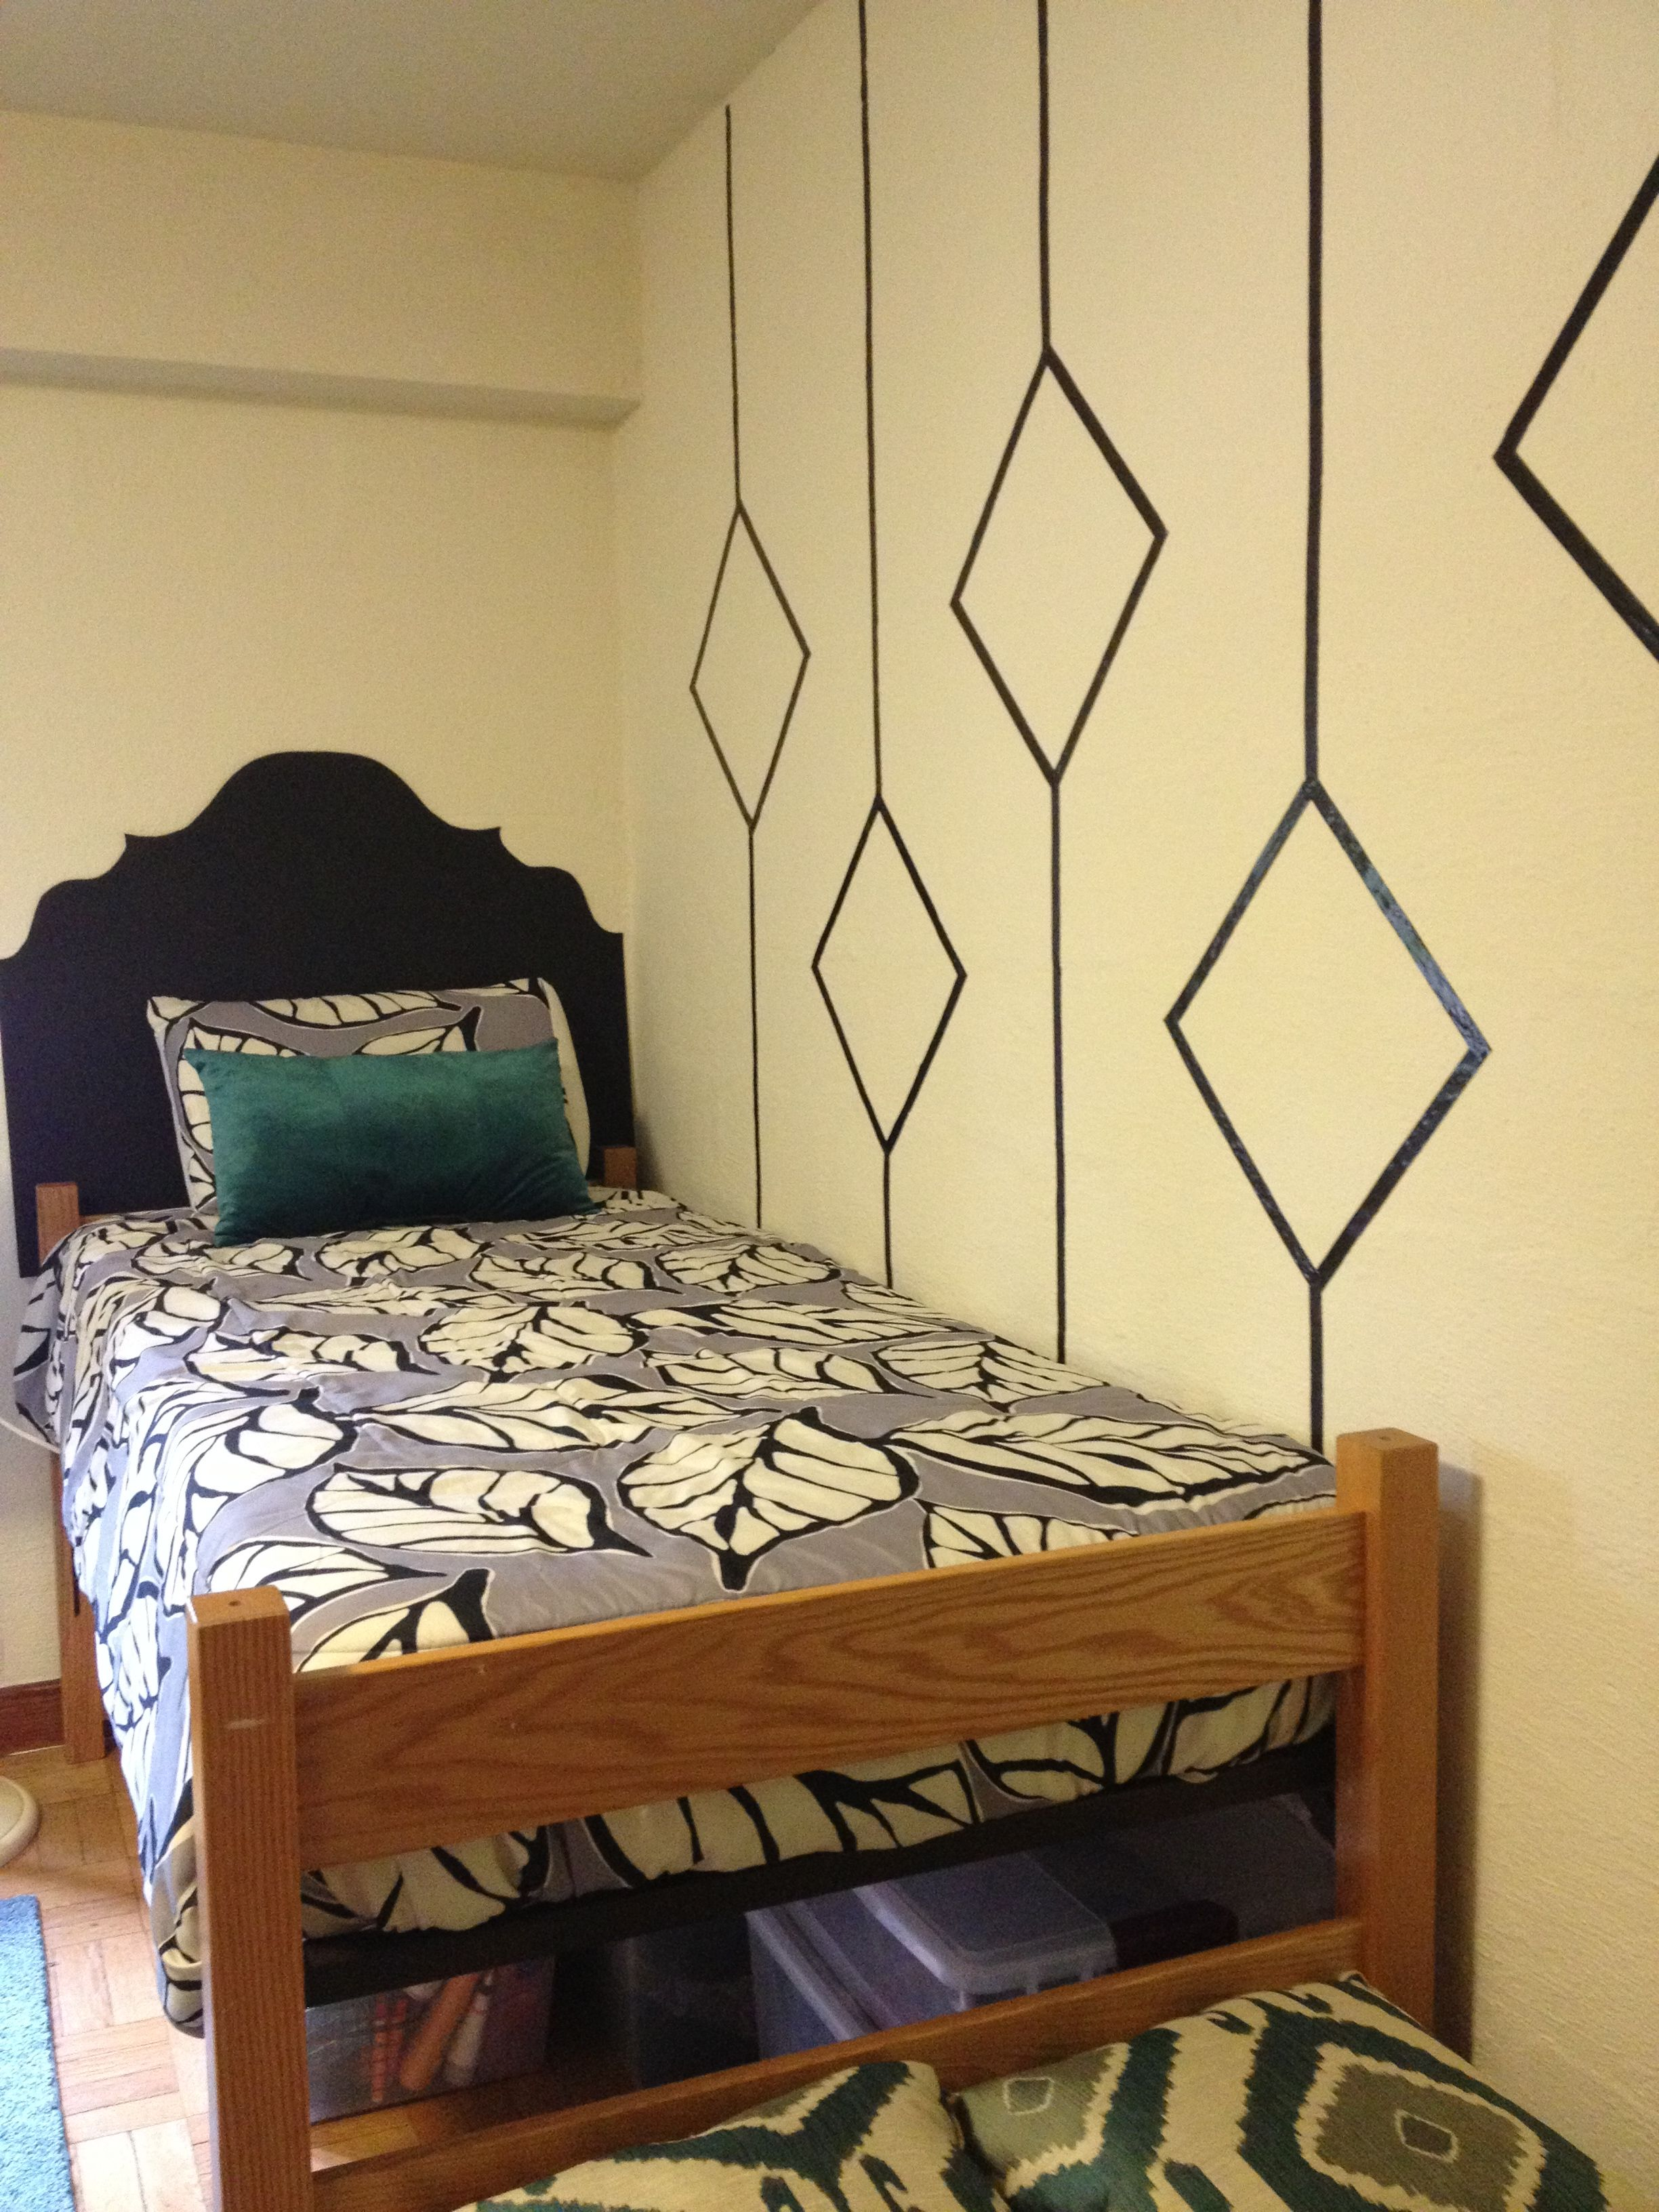 10 Dorm Room Decorating Ideas to Steal | dorm | Pinterest | Dorm ...